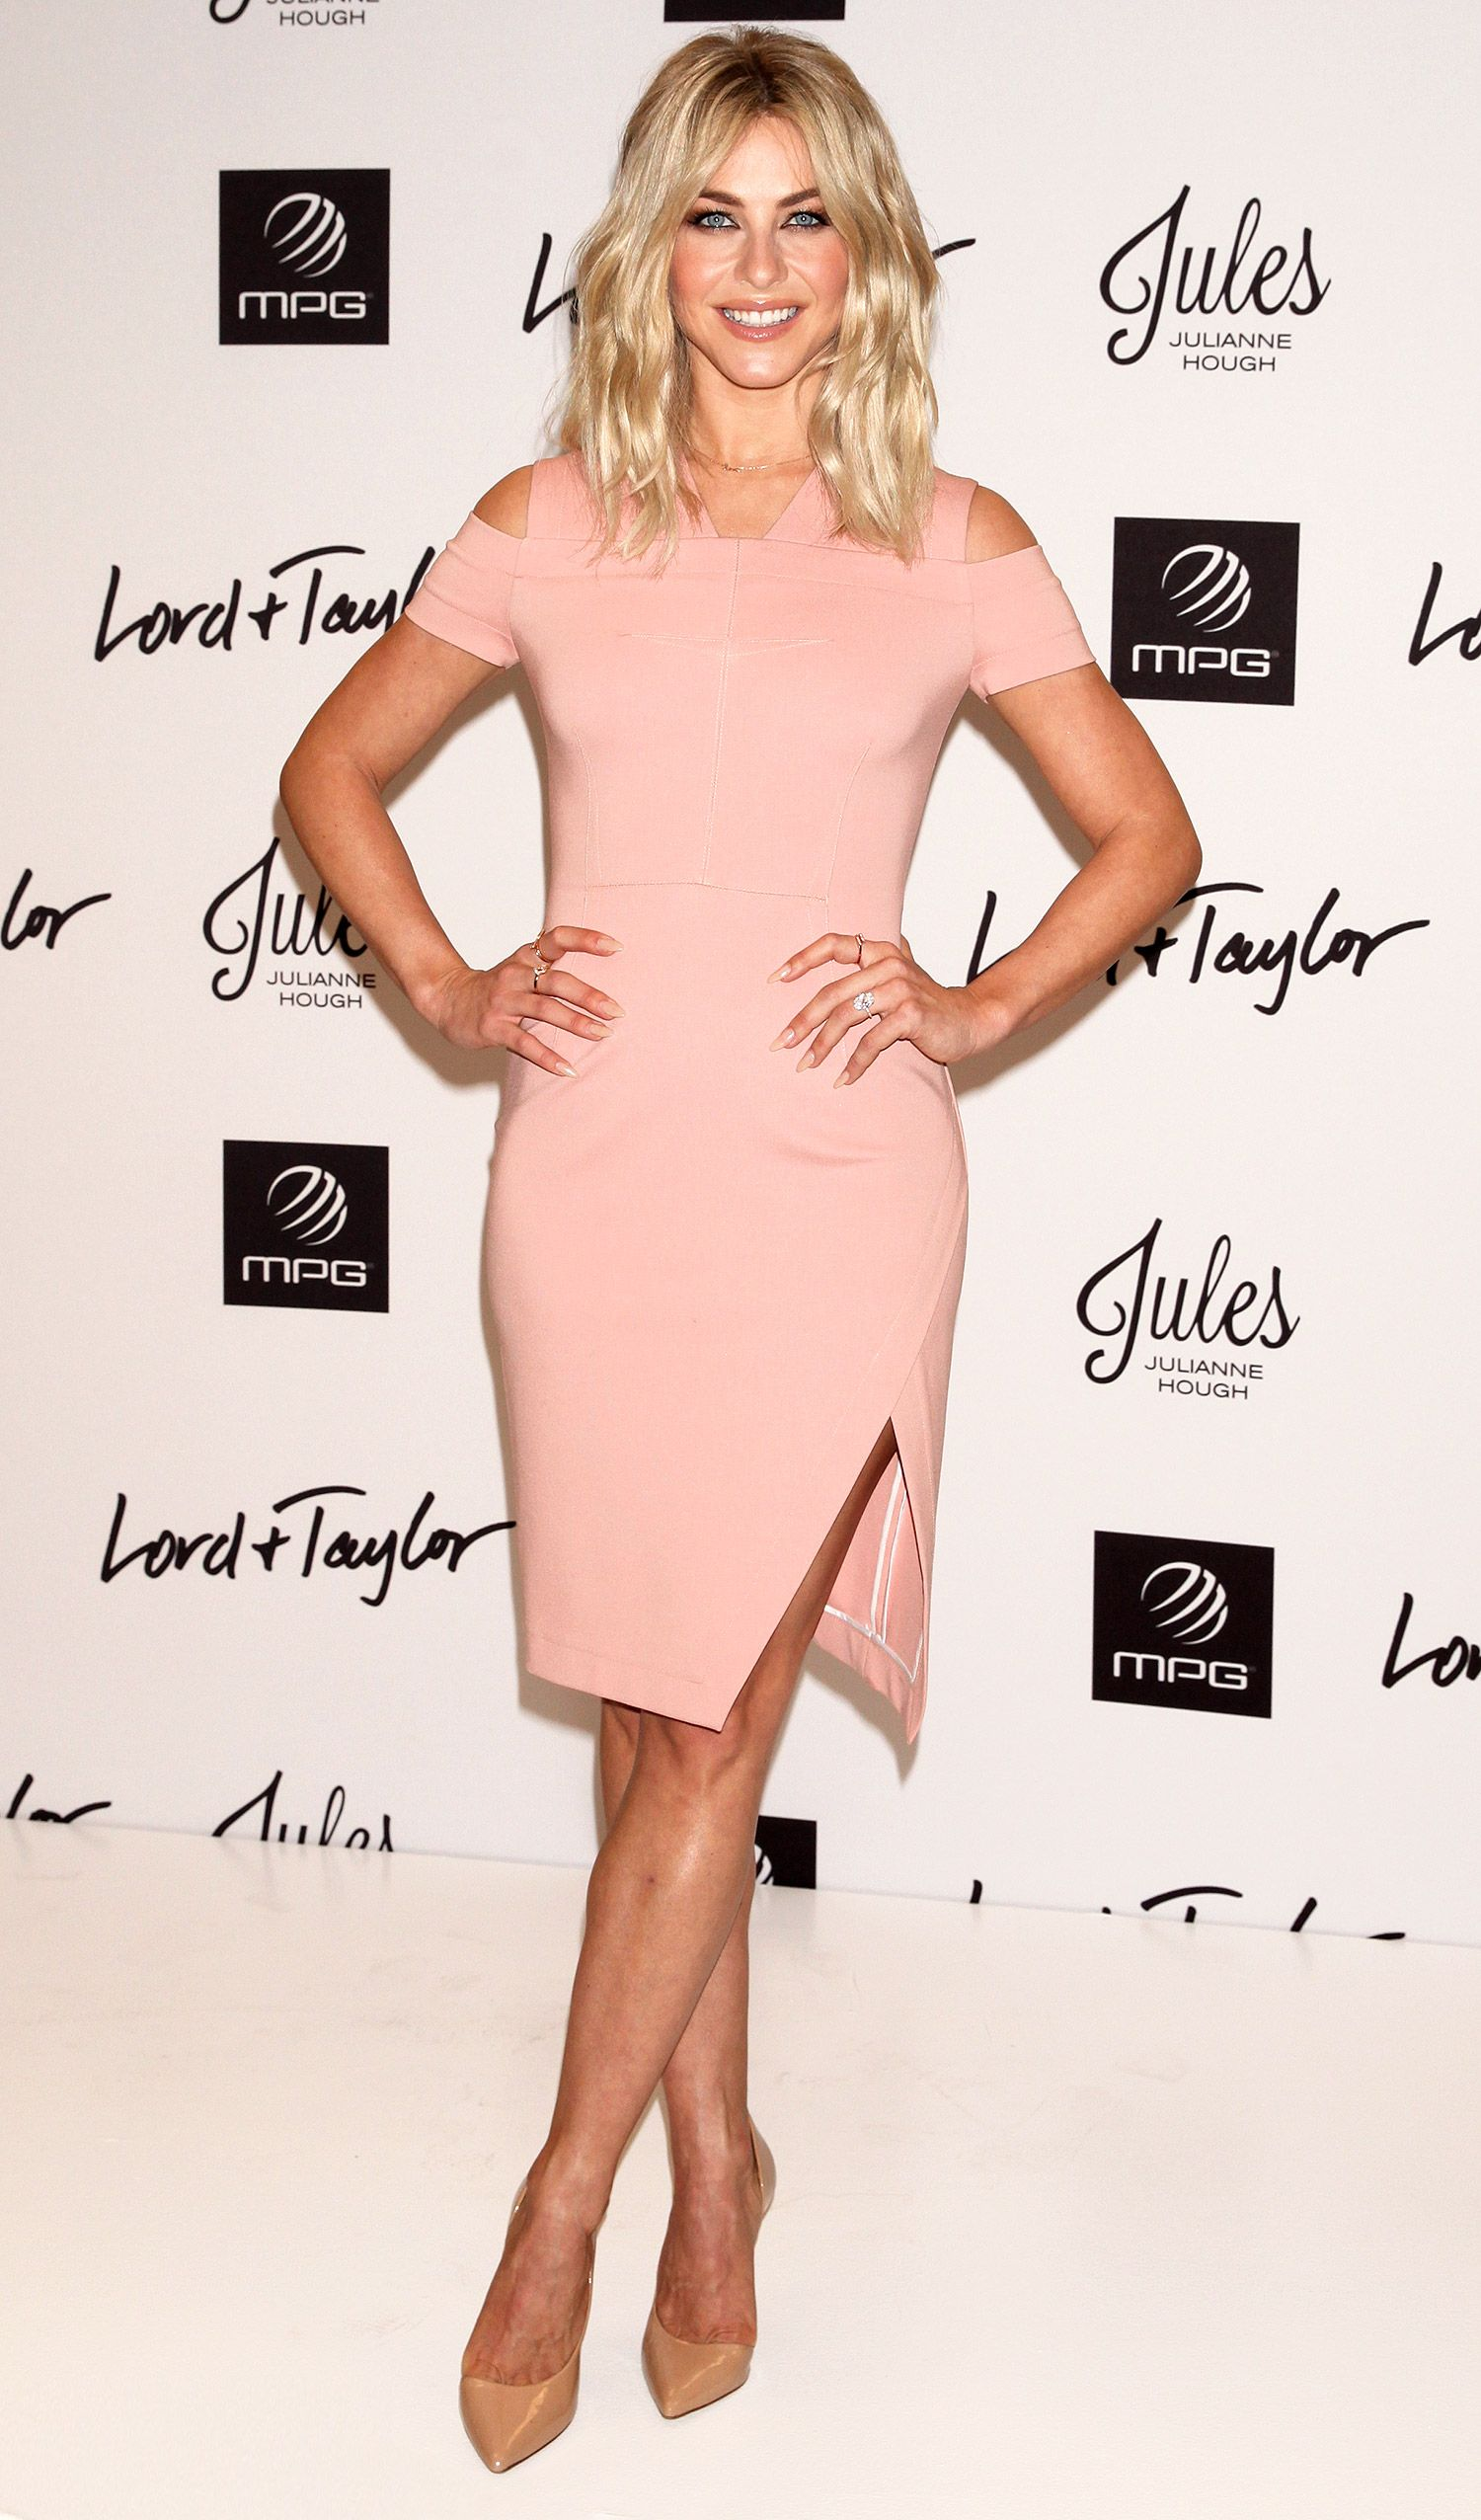 Lo lo lord and taylor party dresses - Julianne Hough Wears A Blush Cold Shoulder Sheath Dress And Nude Kurt Geiger London Pumps At The Lord Taylor Launch Of Her Jules X Mpg Sport Activewear